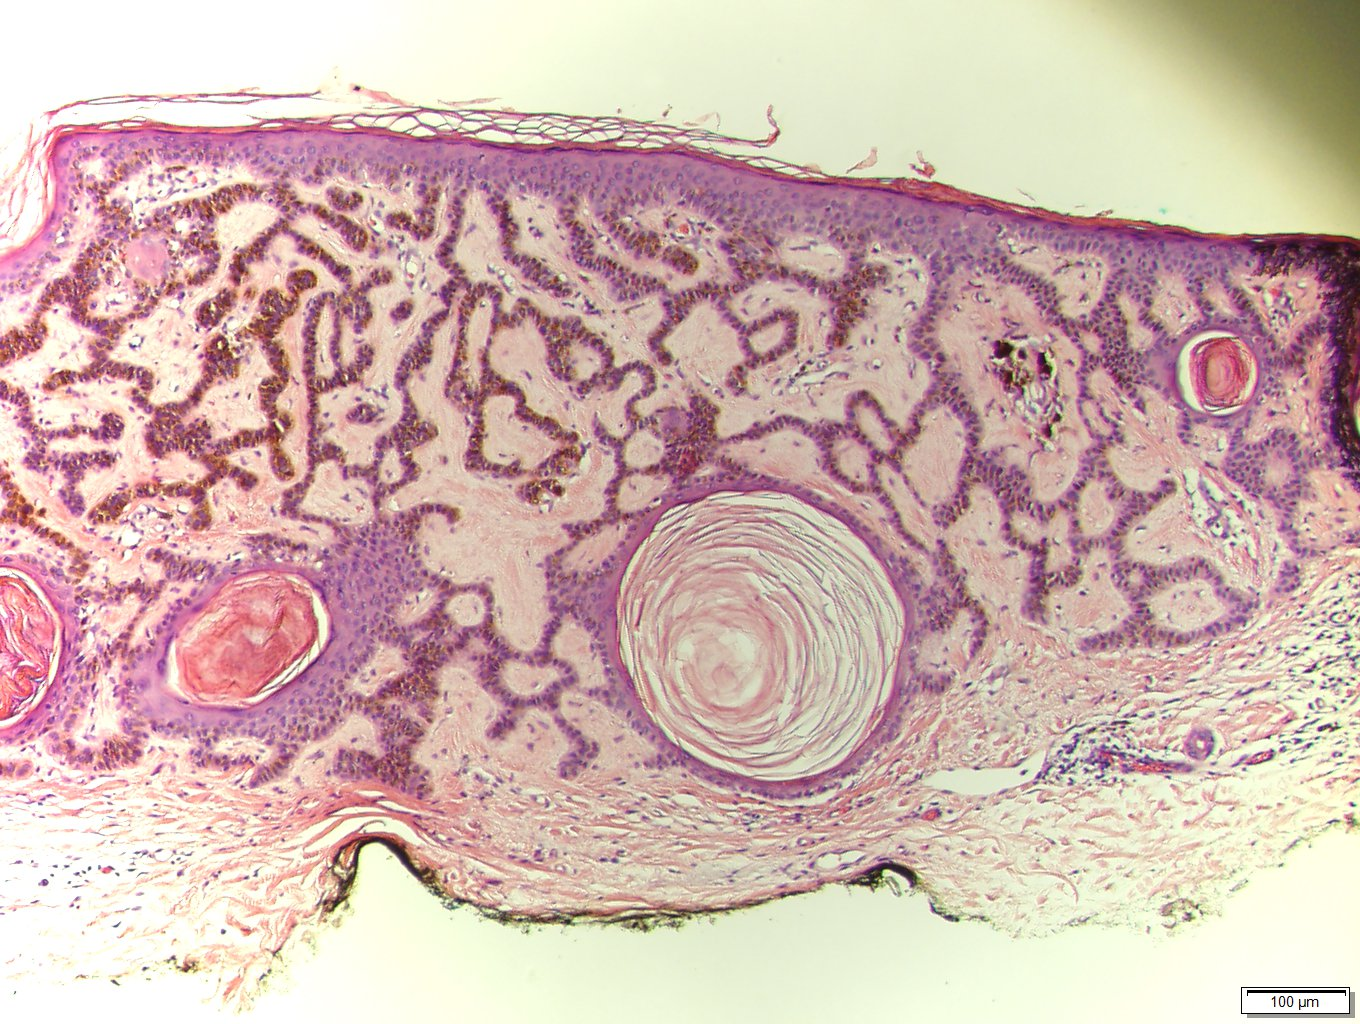 squamous papilloma pathology outlines skin)